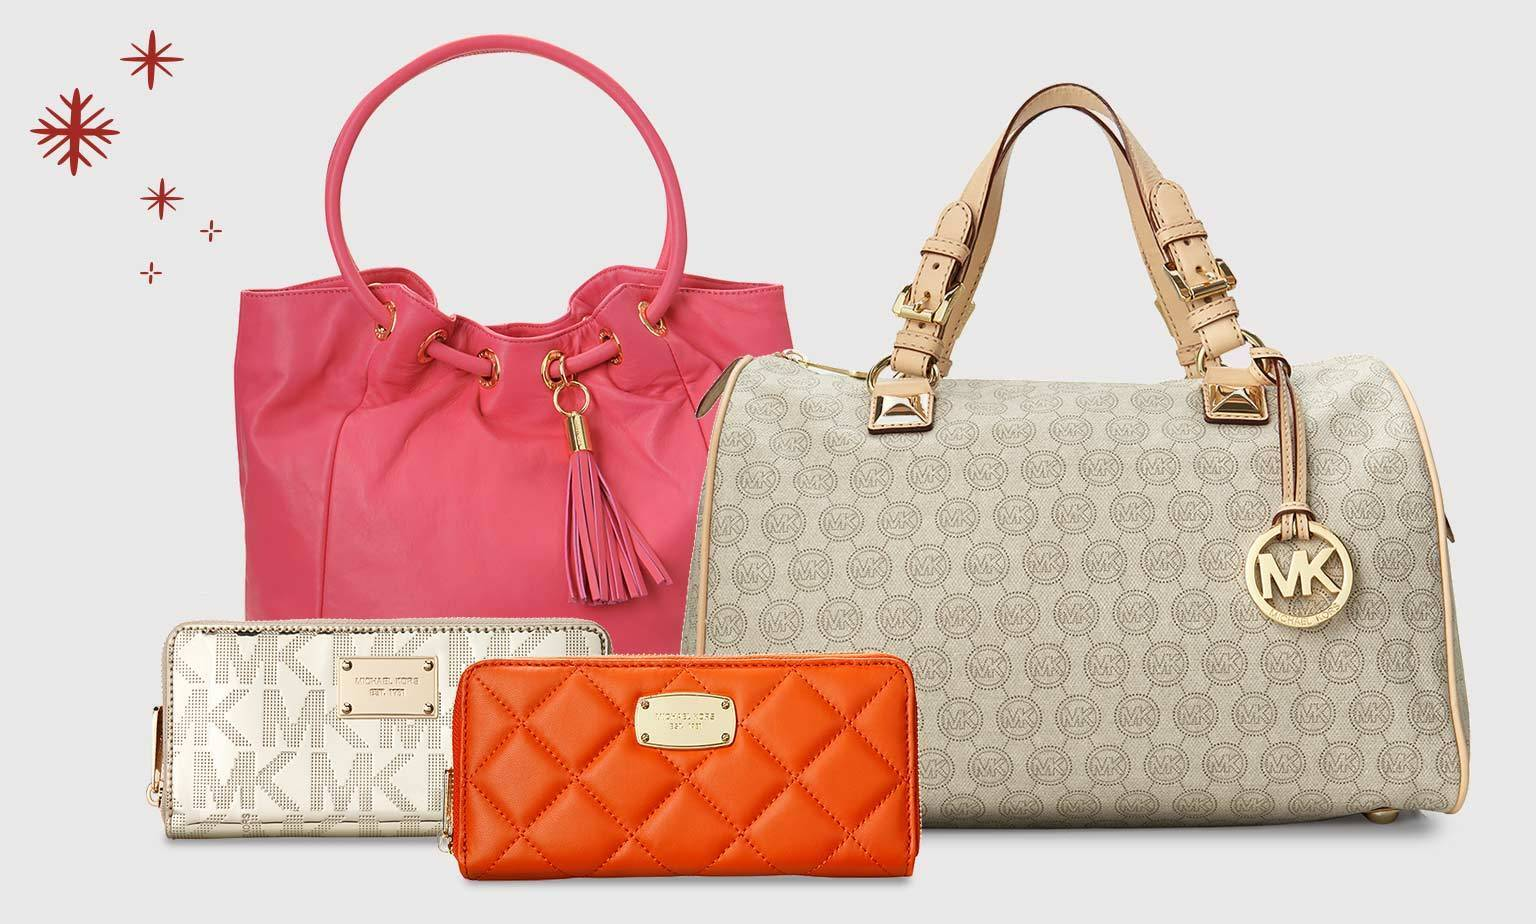 Up to 40% off Michael Kors